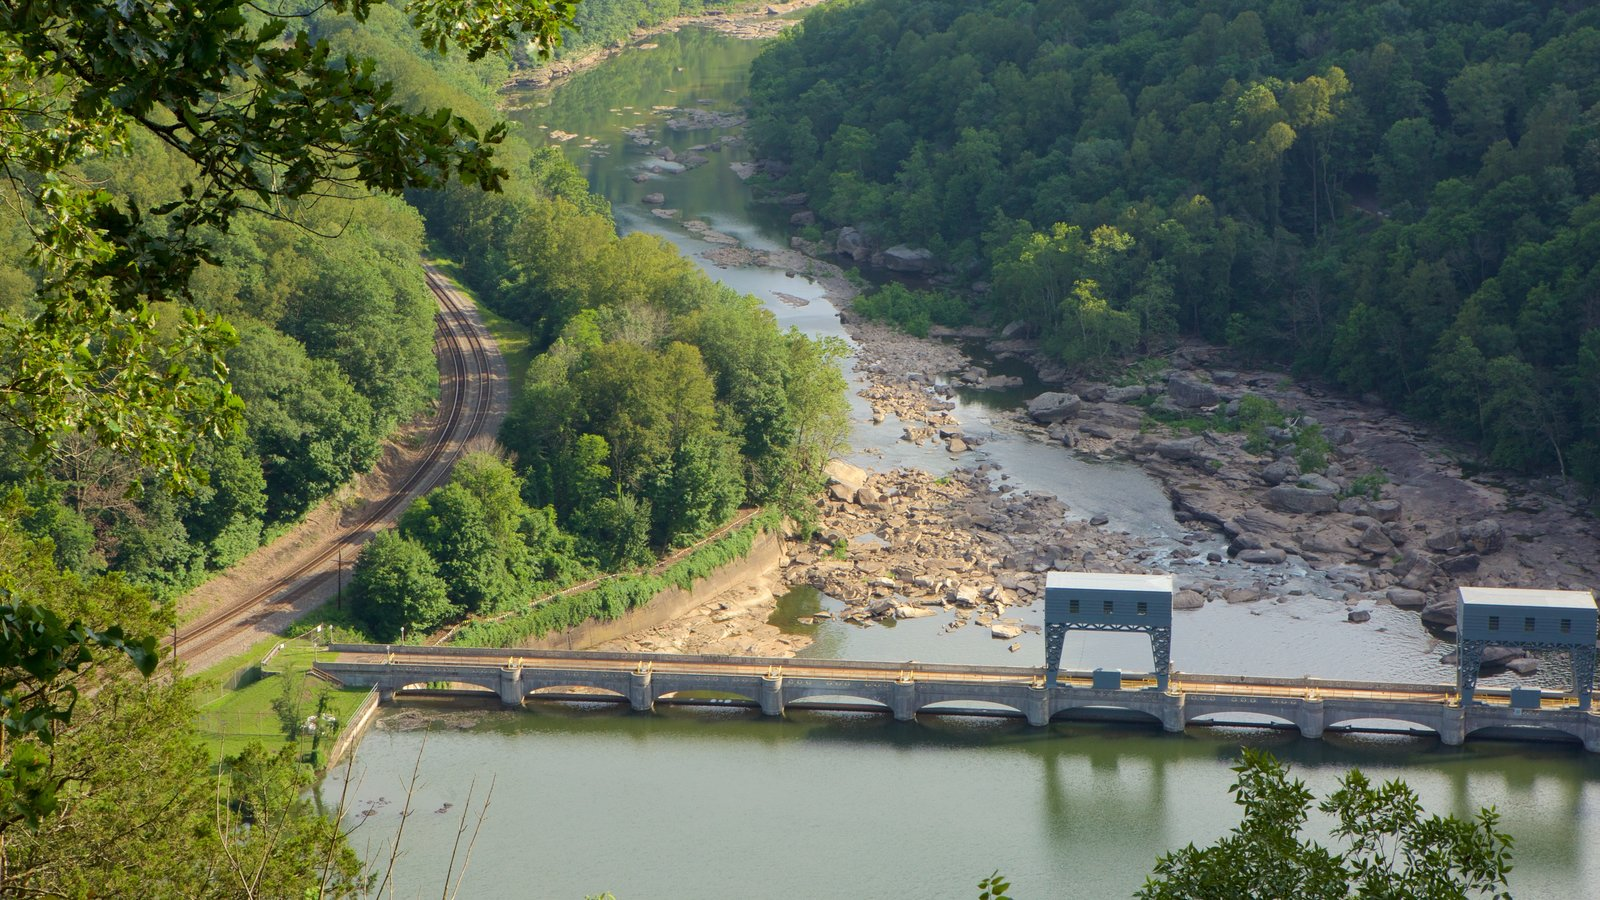 Hawks Nest State Park showing a river or creek, railway items and tranquil scenes